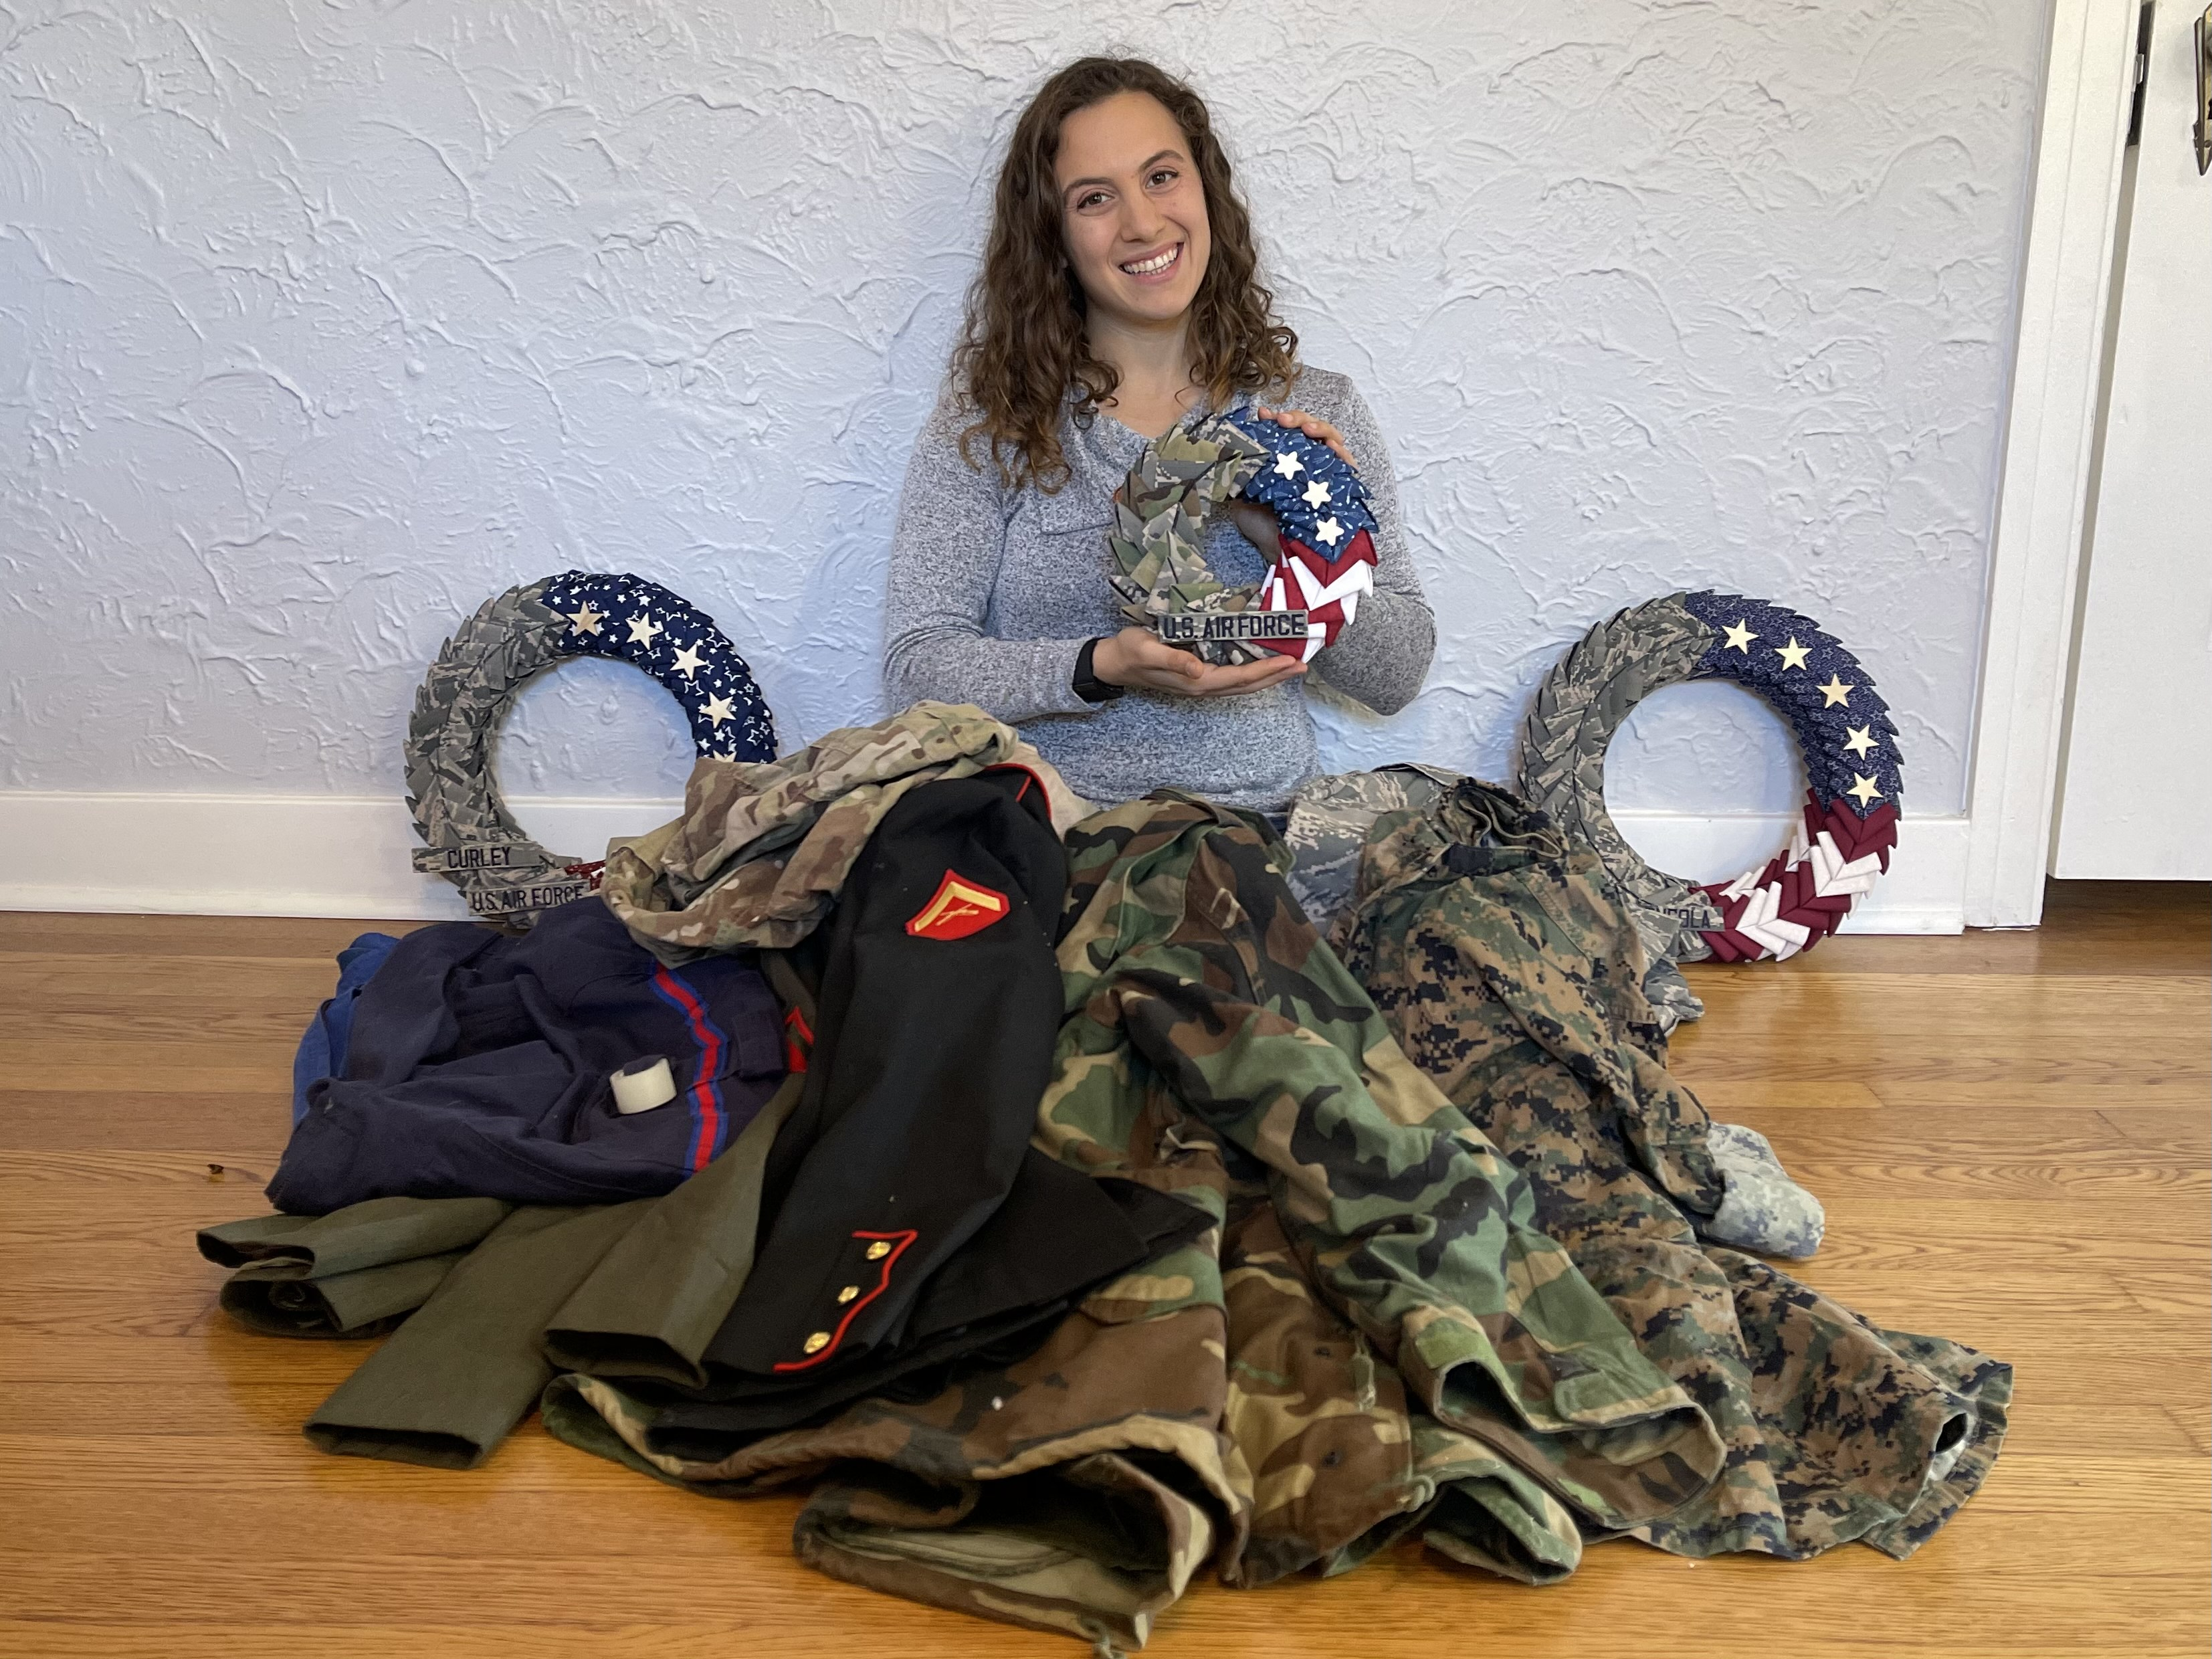 Staff Sergeant Hand-Crafts Patriotic Wreaths From Military Uniforms for Veterans and Families